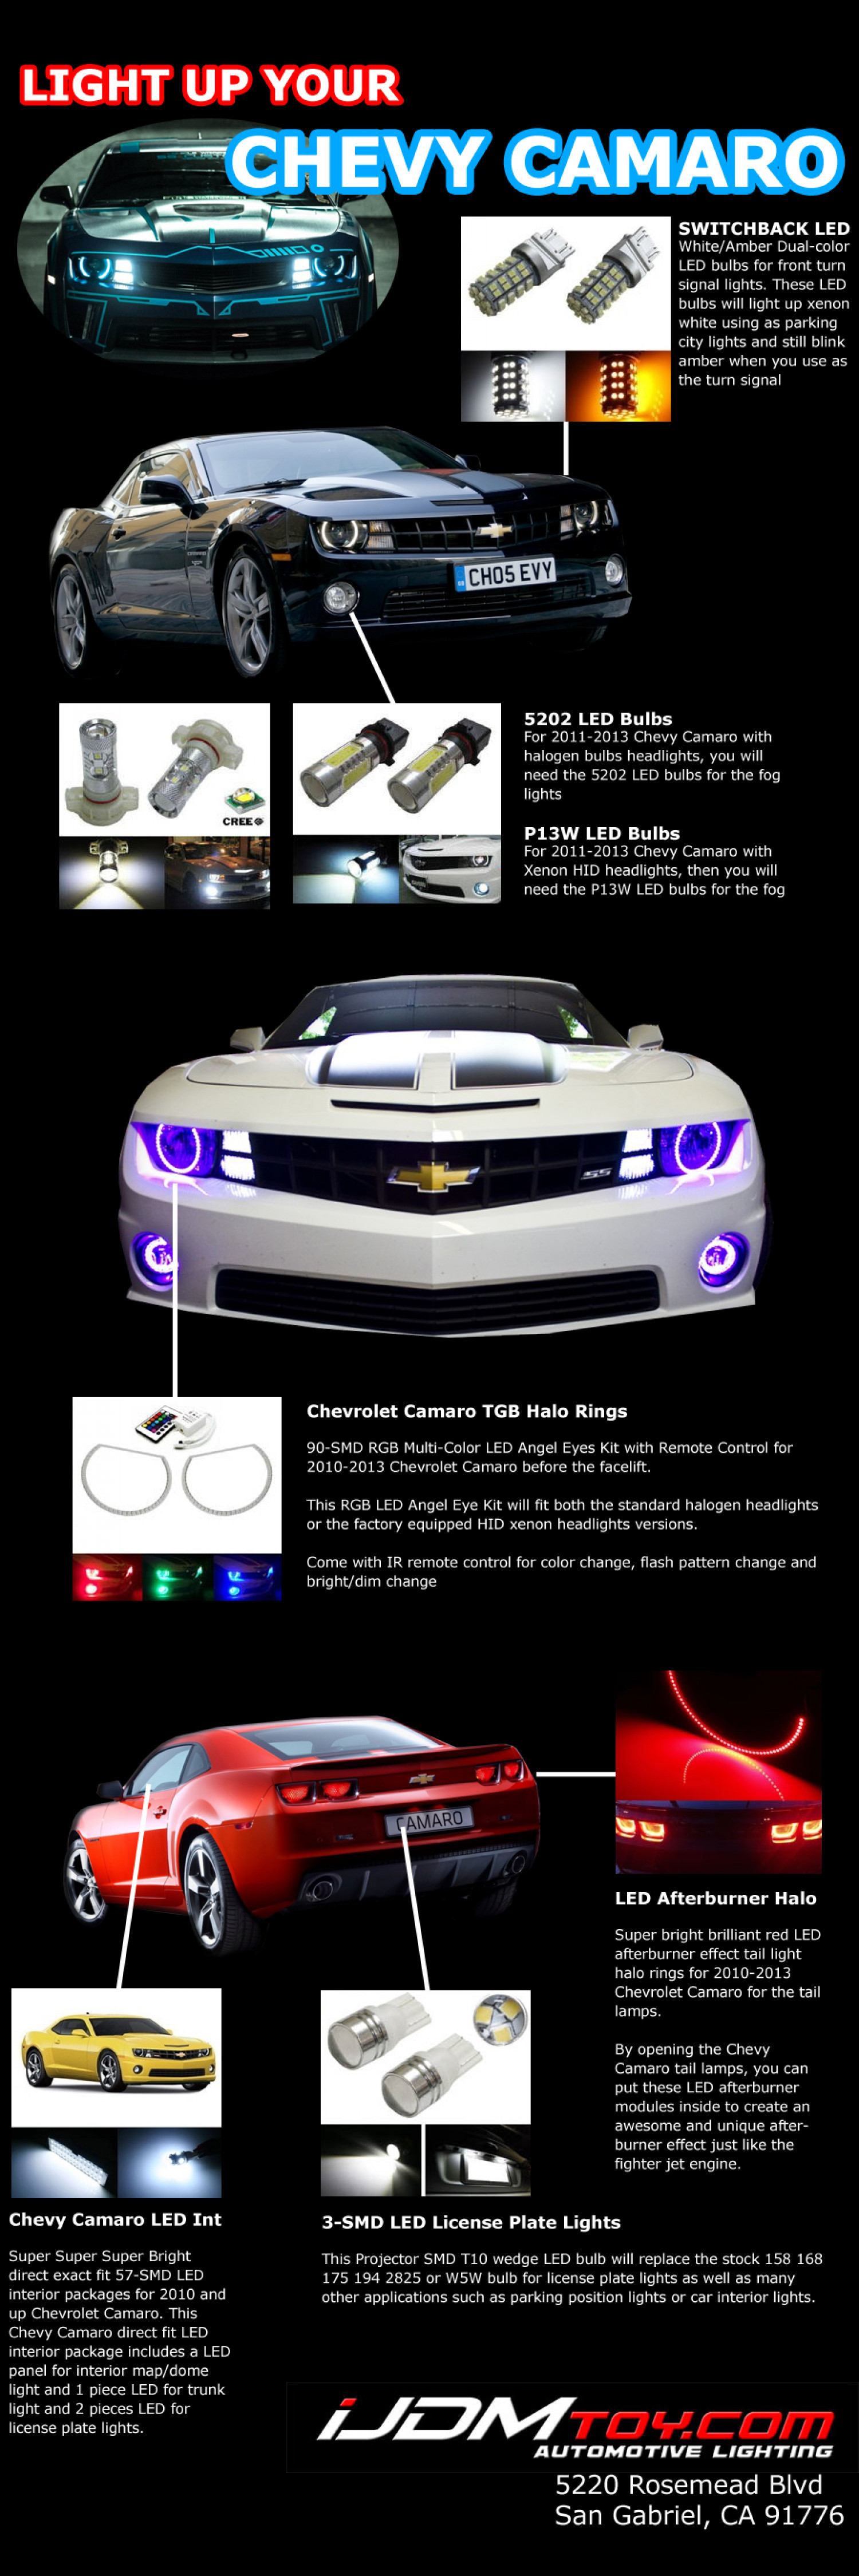 LED Lights For Chevy Camaro, Light up your ride with tons of LED goodies Infographic